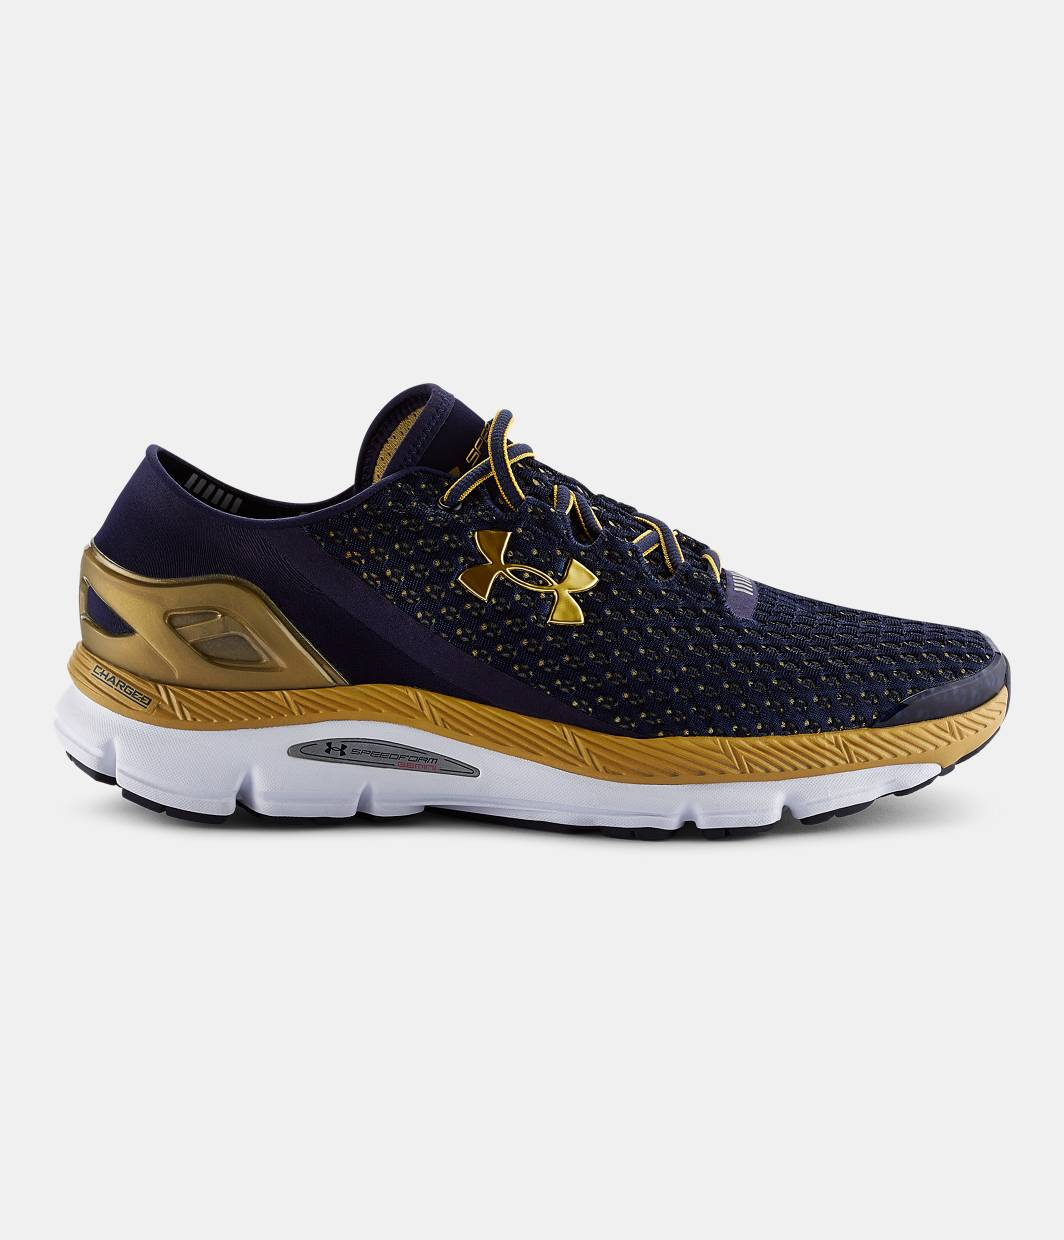 Under Armour Navy Blue And Orange Training Shoes